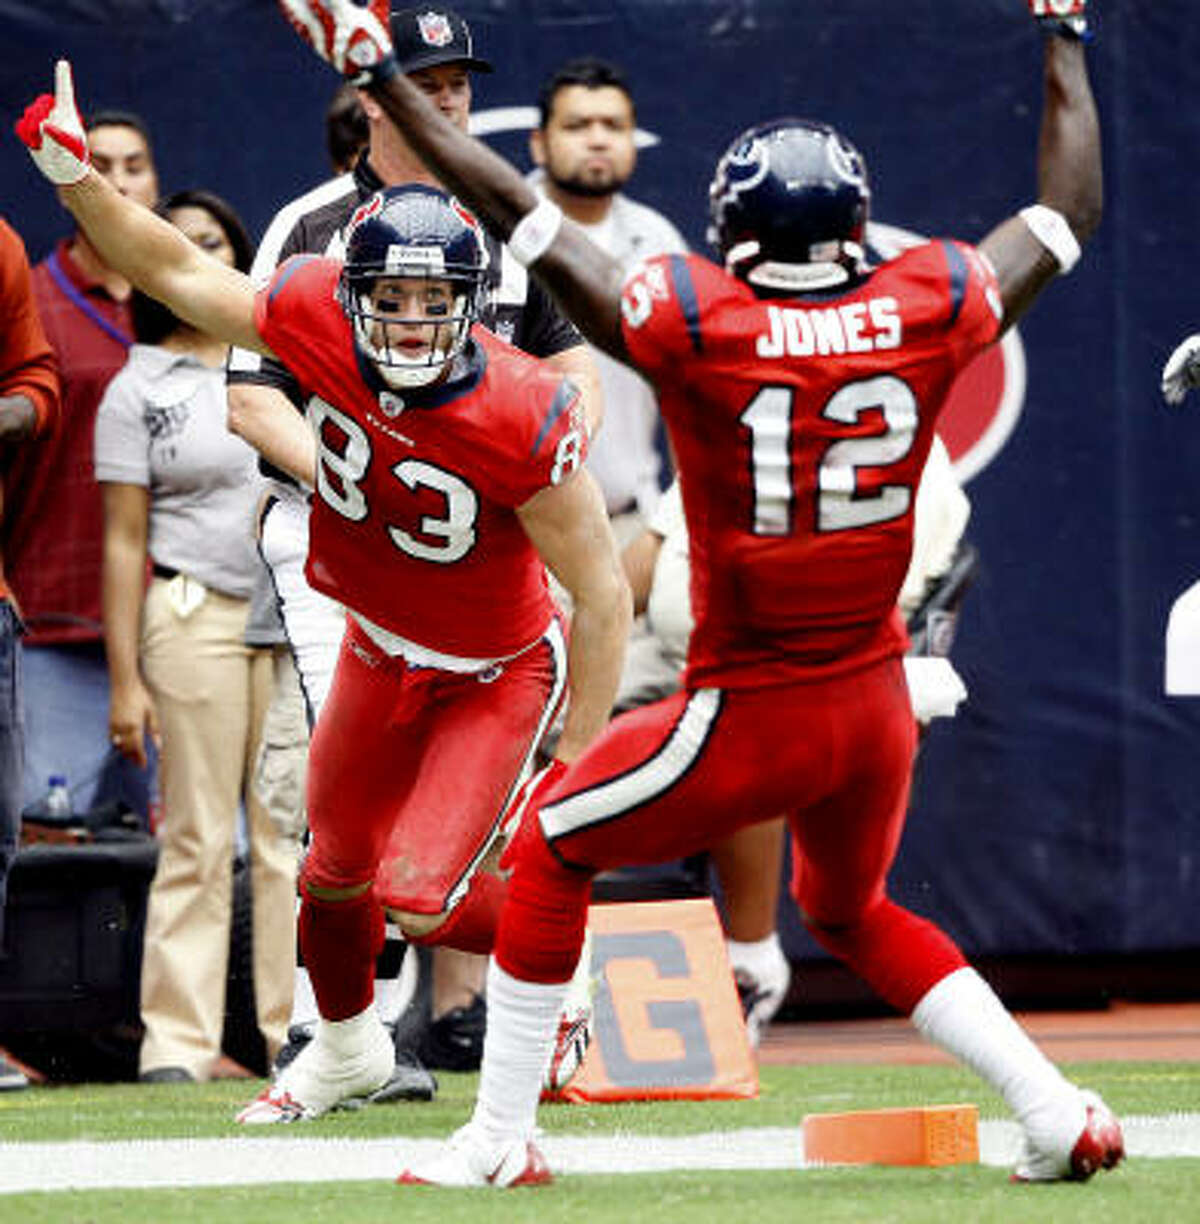 Wide receivers/tight ends Kevin Walter (pictured) played for the first time and had seven catches, including one touchdown. He had a devastating penalty, too. Owen Daniels had a touchdown catch. Andre Johnson had 86 yards on four receptions. B-